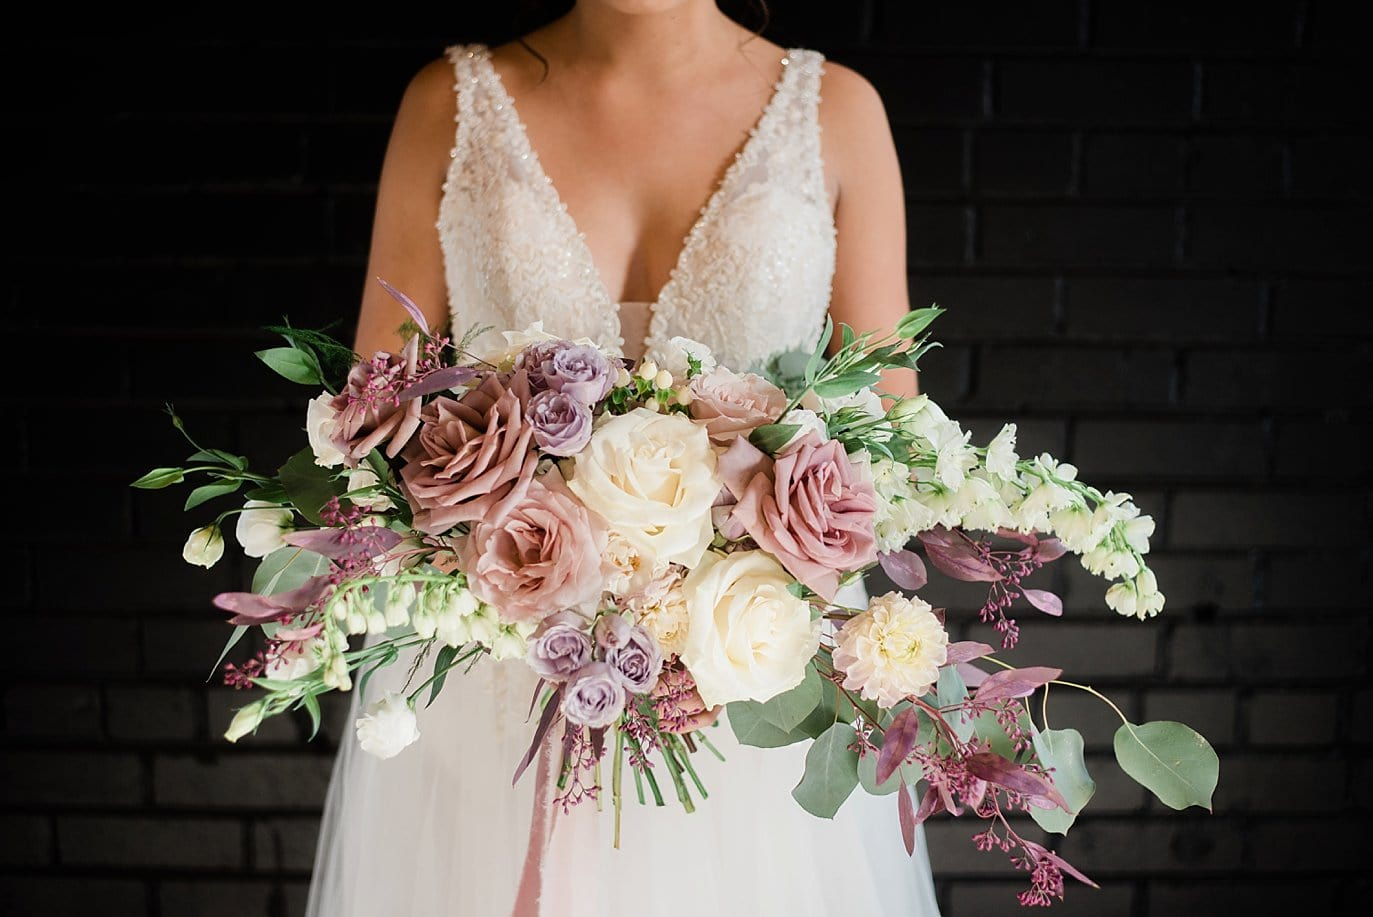 bride with large lavender and rose bridal bouquet in front of black brick wall at at Shyft Denver wedding by Denver wedding photographer Jennie Crate photographer